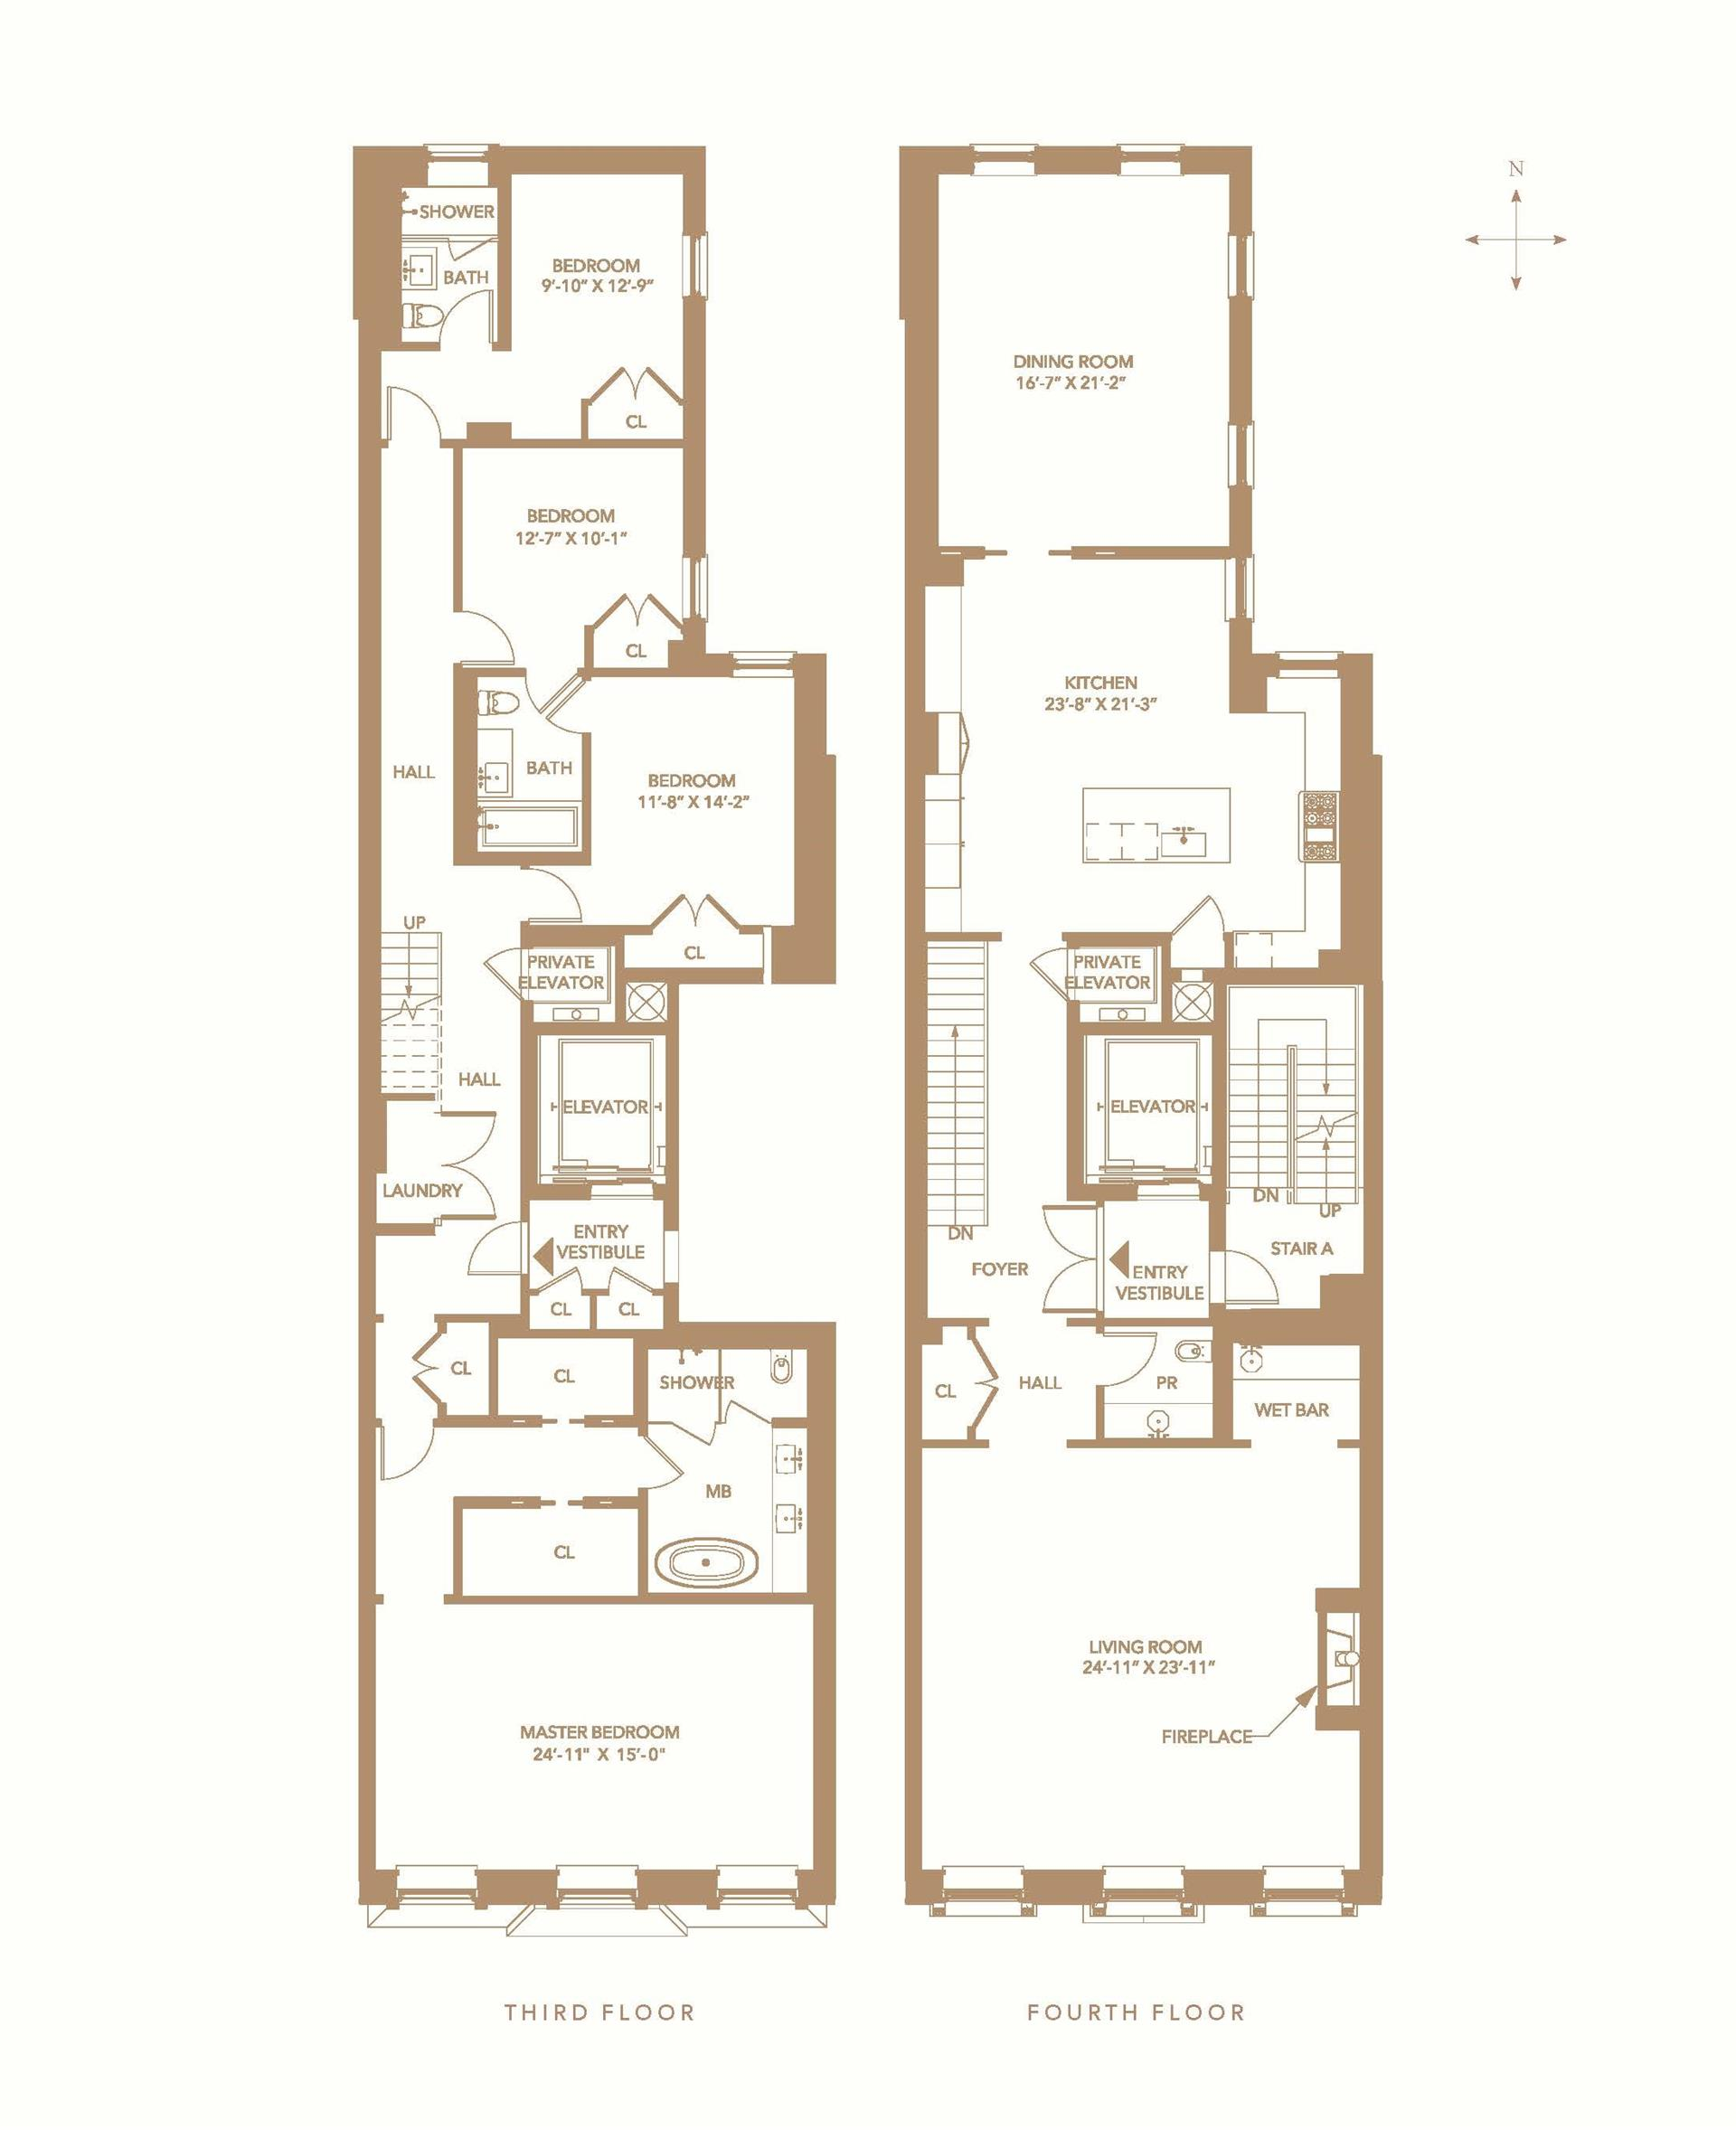 Floor plan of 39 East 72nd St, DUPLEX - Upper East Side, New York